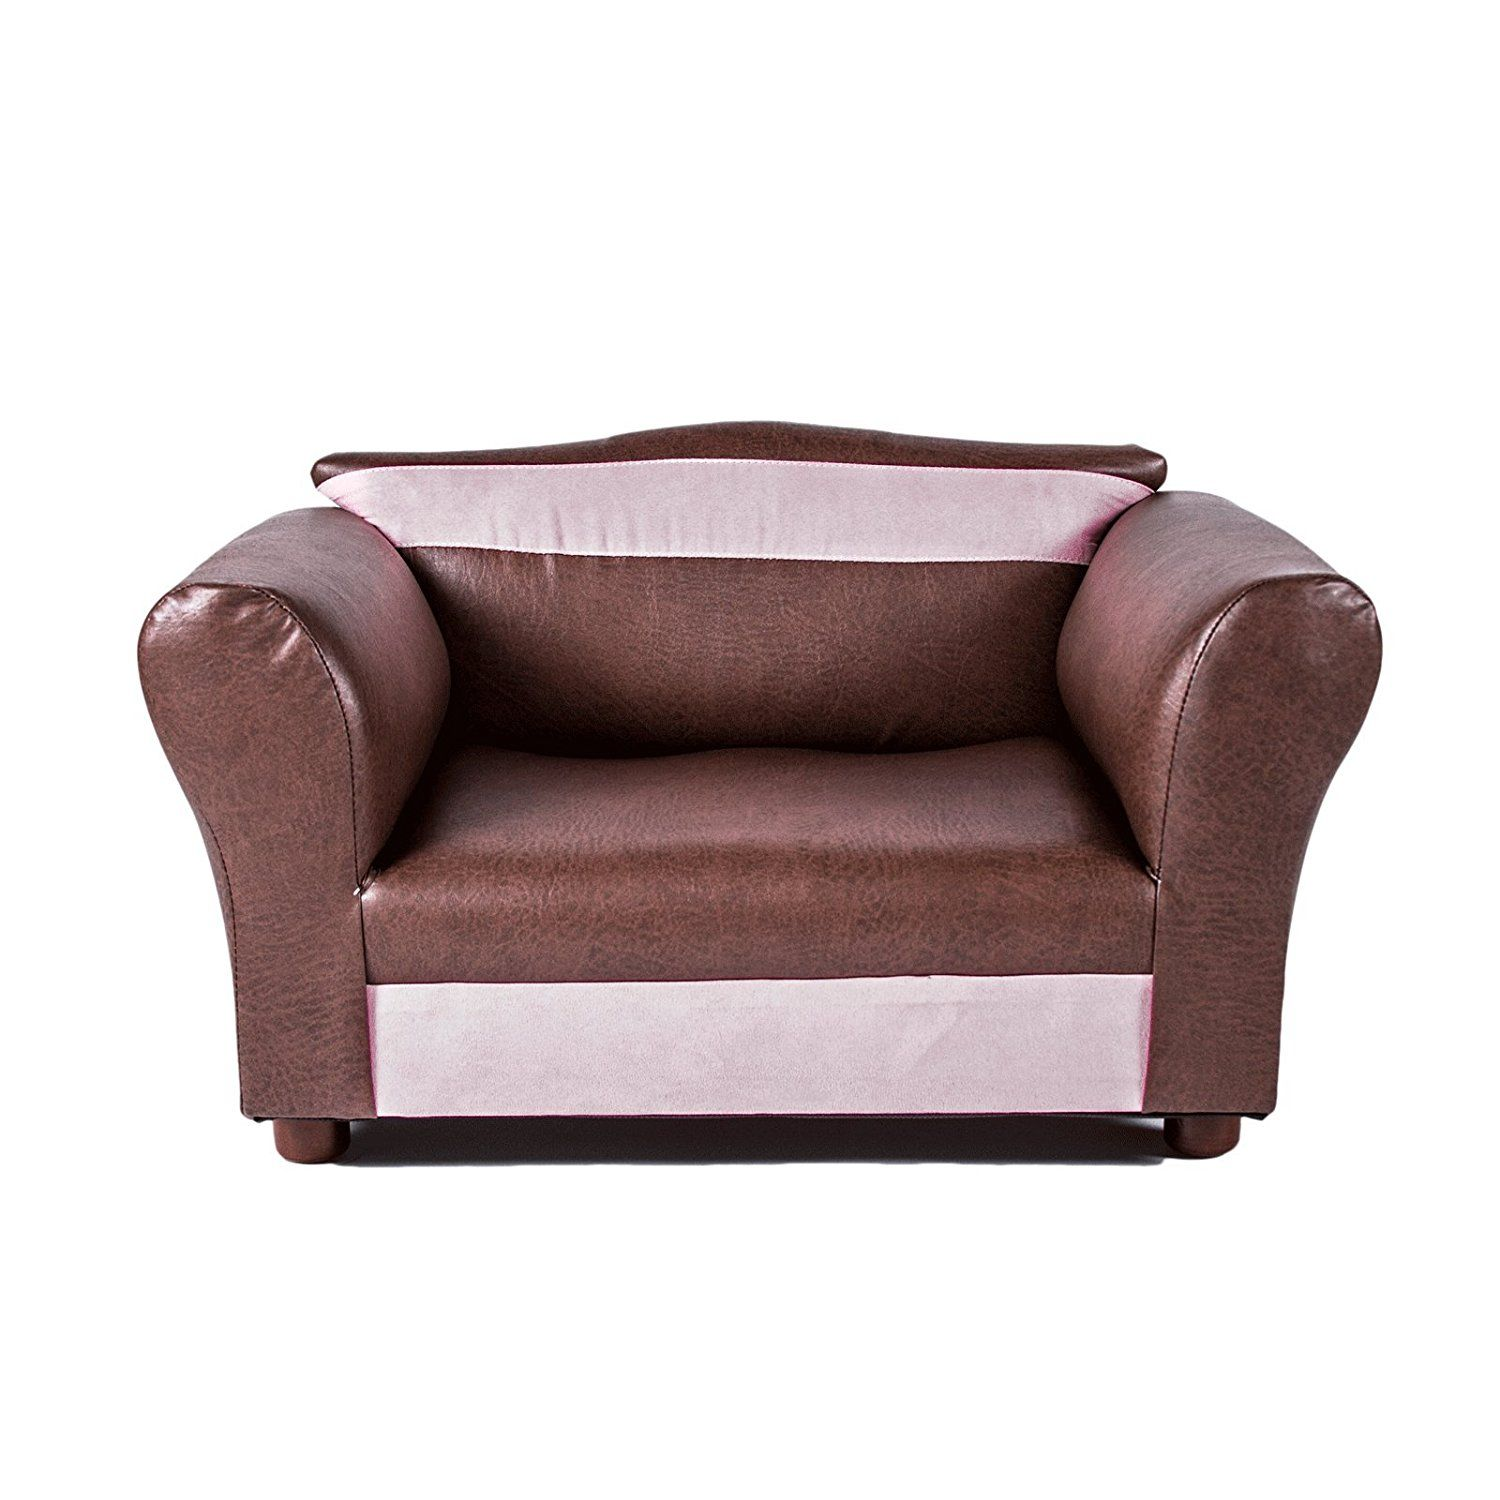 Fantasy Furniture Sofa Mini Pet Bed See This Awesome Image Dog Beds And